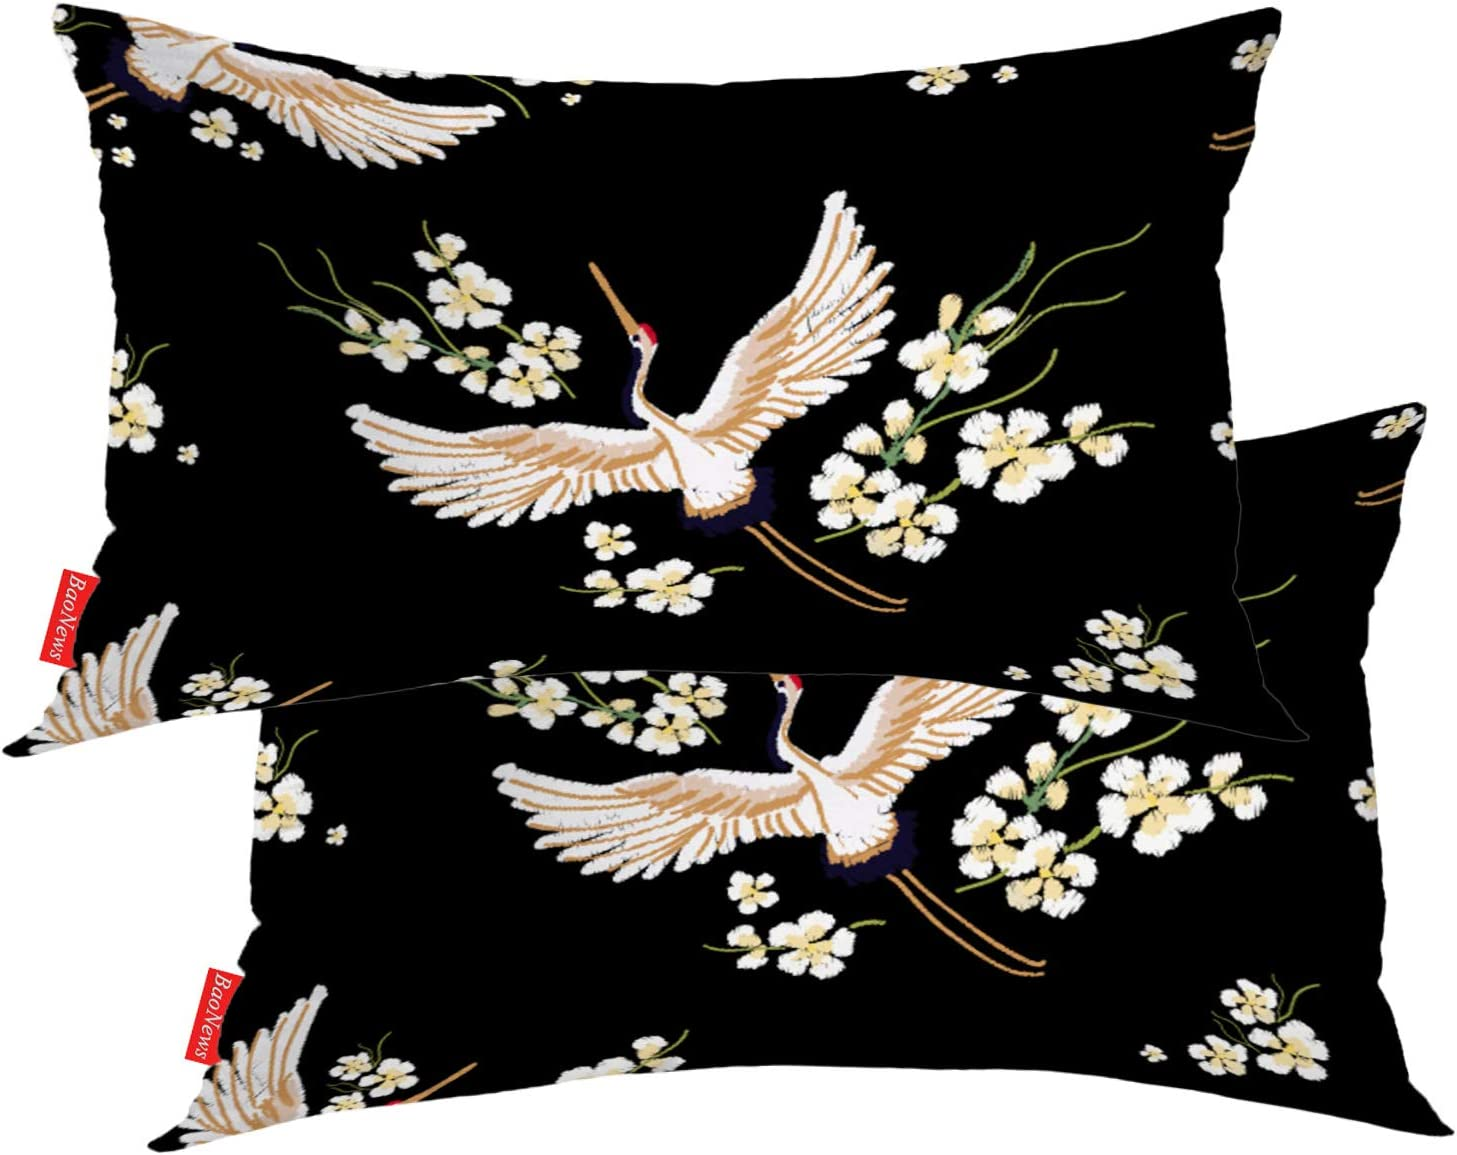 Baonews Colorful Pillow Covers Oriental Tropical Leafs Flowers On Black Lumbar 12 X 20 Inches Decorative Throw Pillow Covers Cotton Cushion For Sofa Bedroom Car White 04 Set Of 2 Home Kitchen